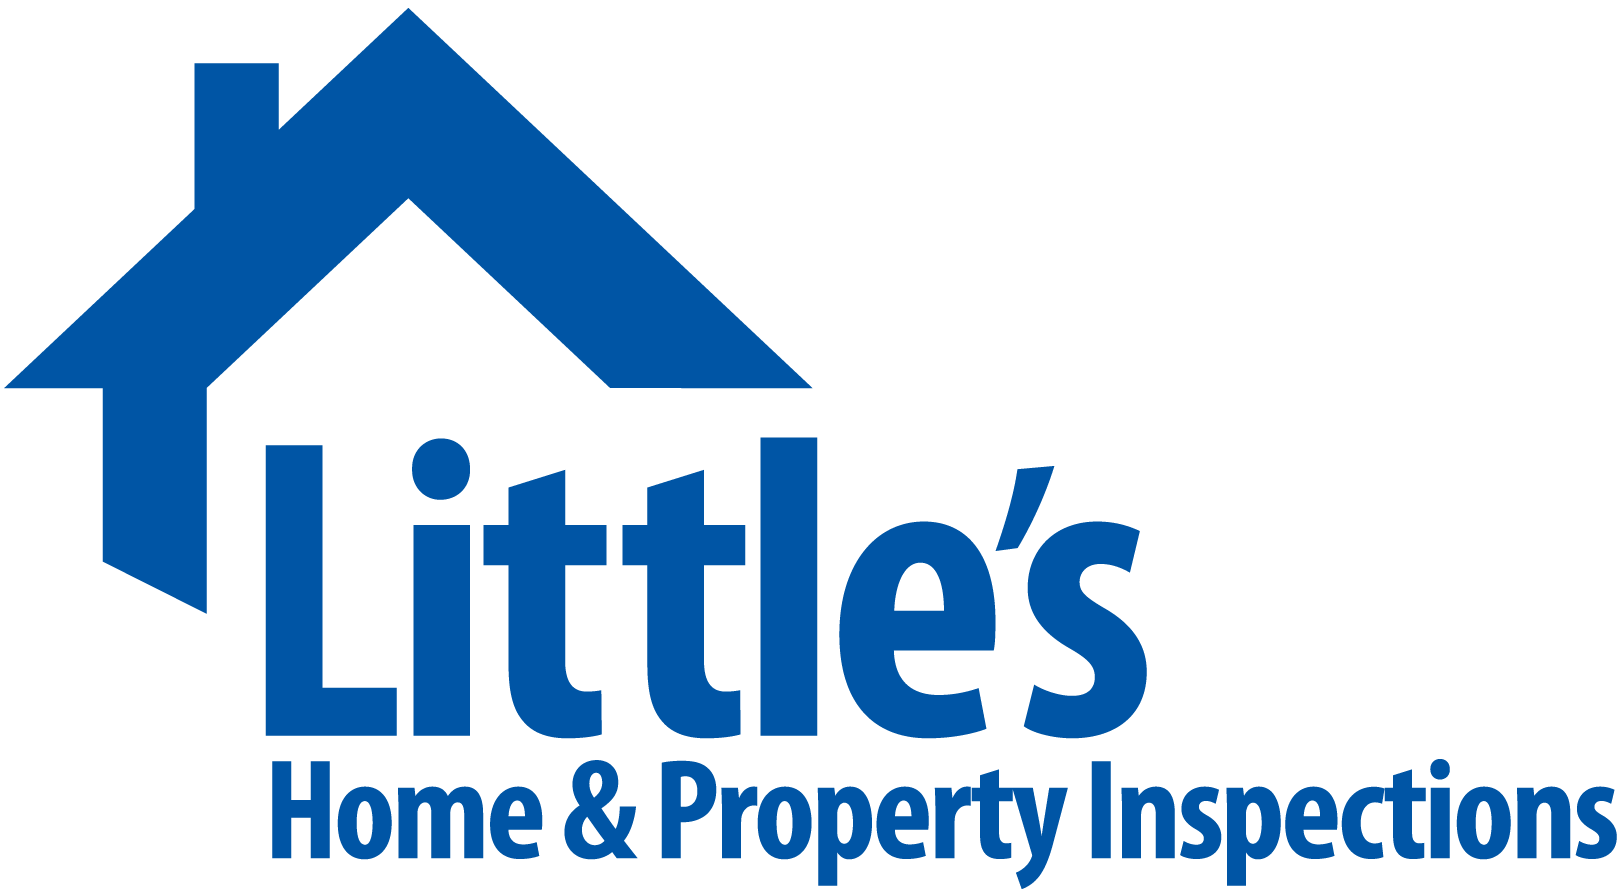 Little's Home & Property Inspections